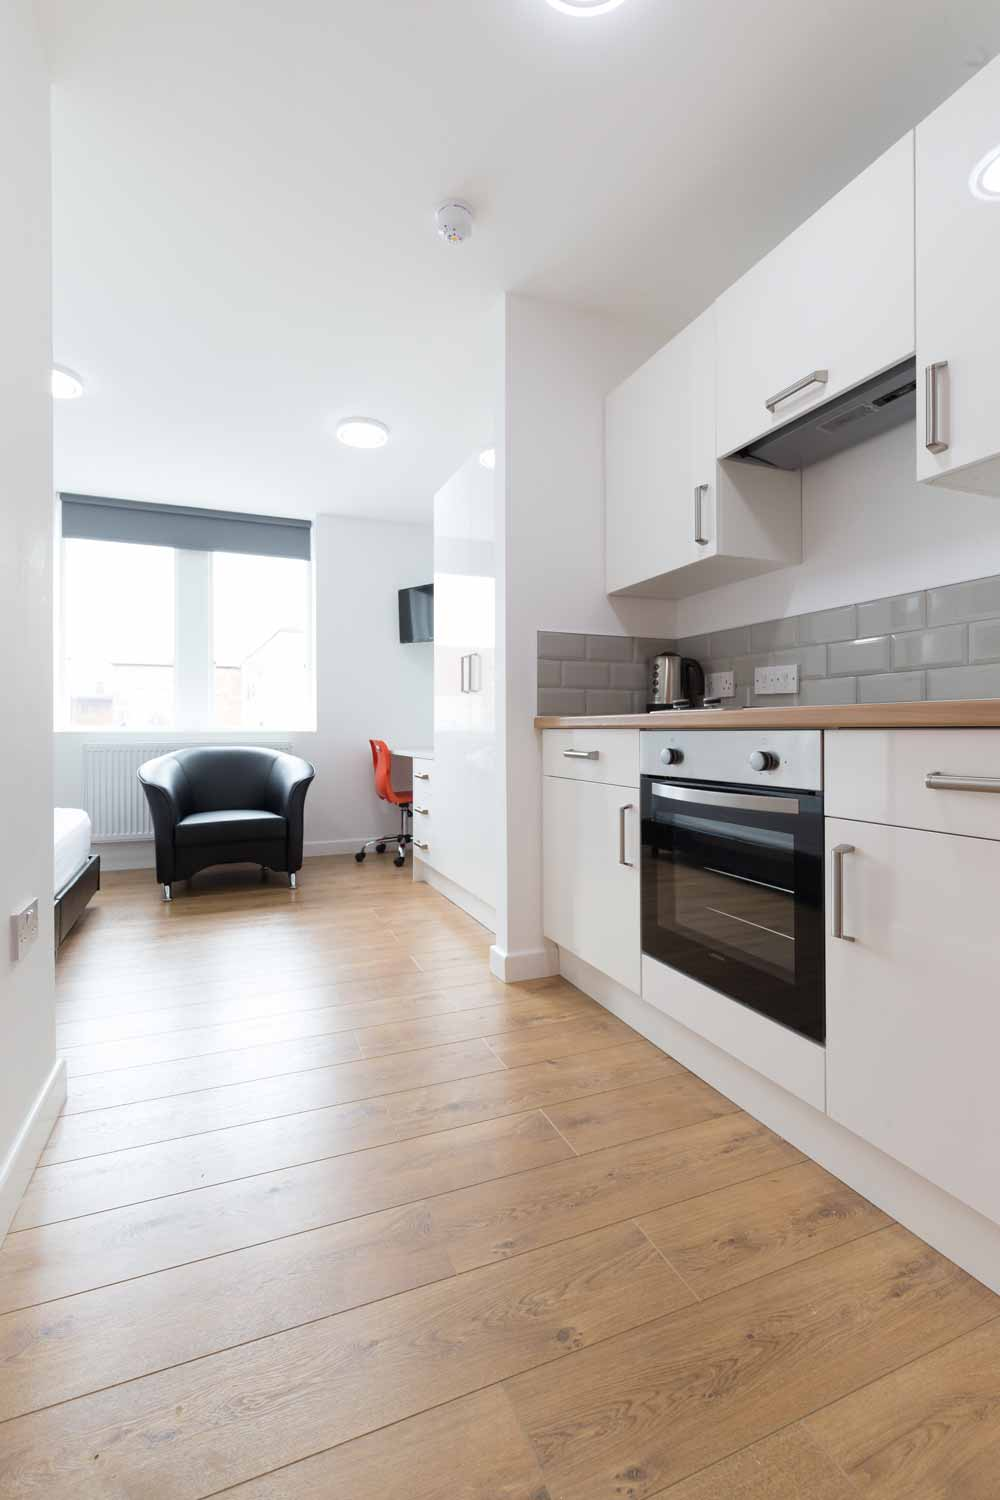 student accommodation newcastle under lyme studio unit kitchen area